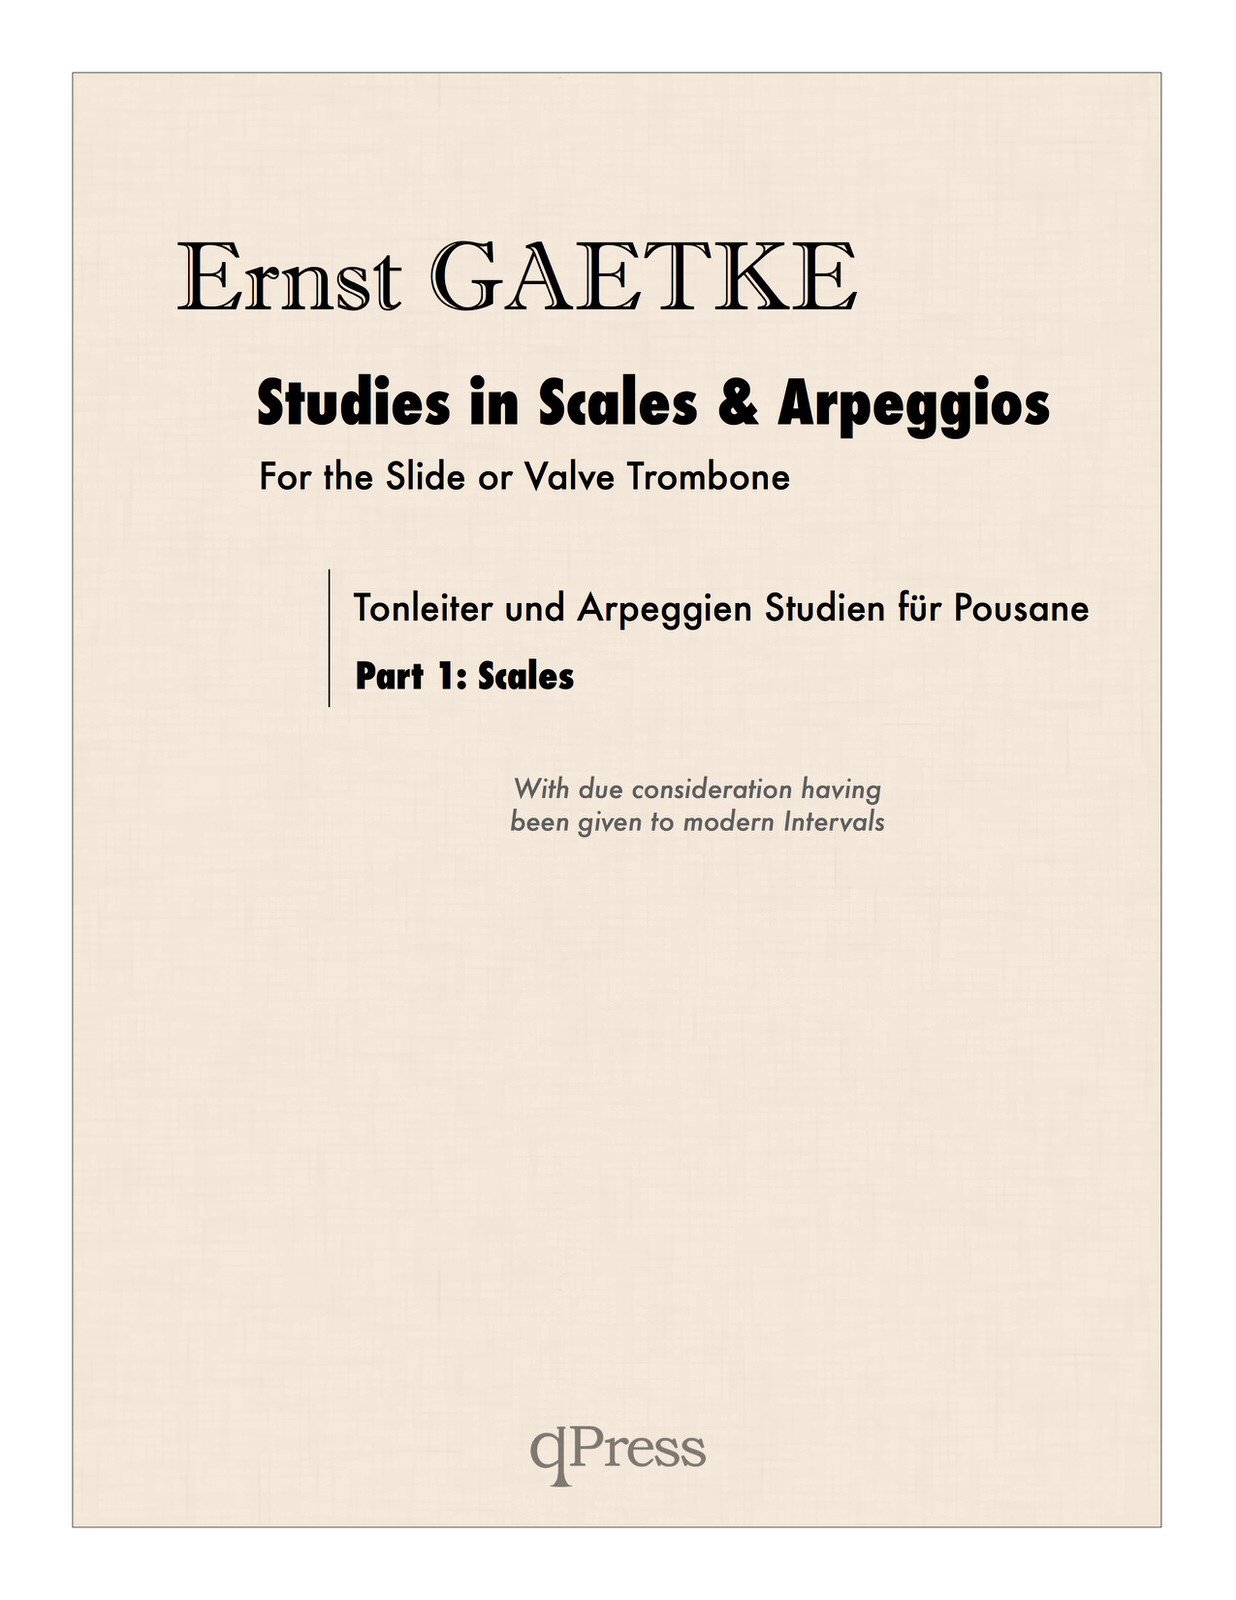 gaetke-studies-in-scales-and-arpeggios-for-trombone-part-1